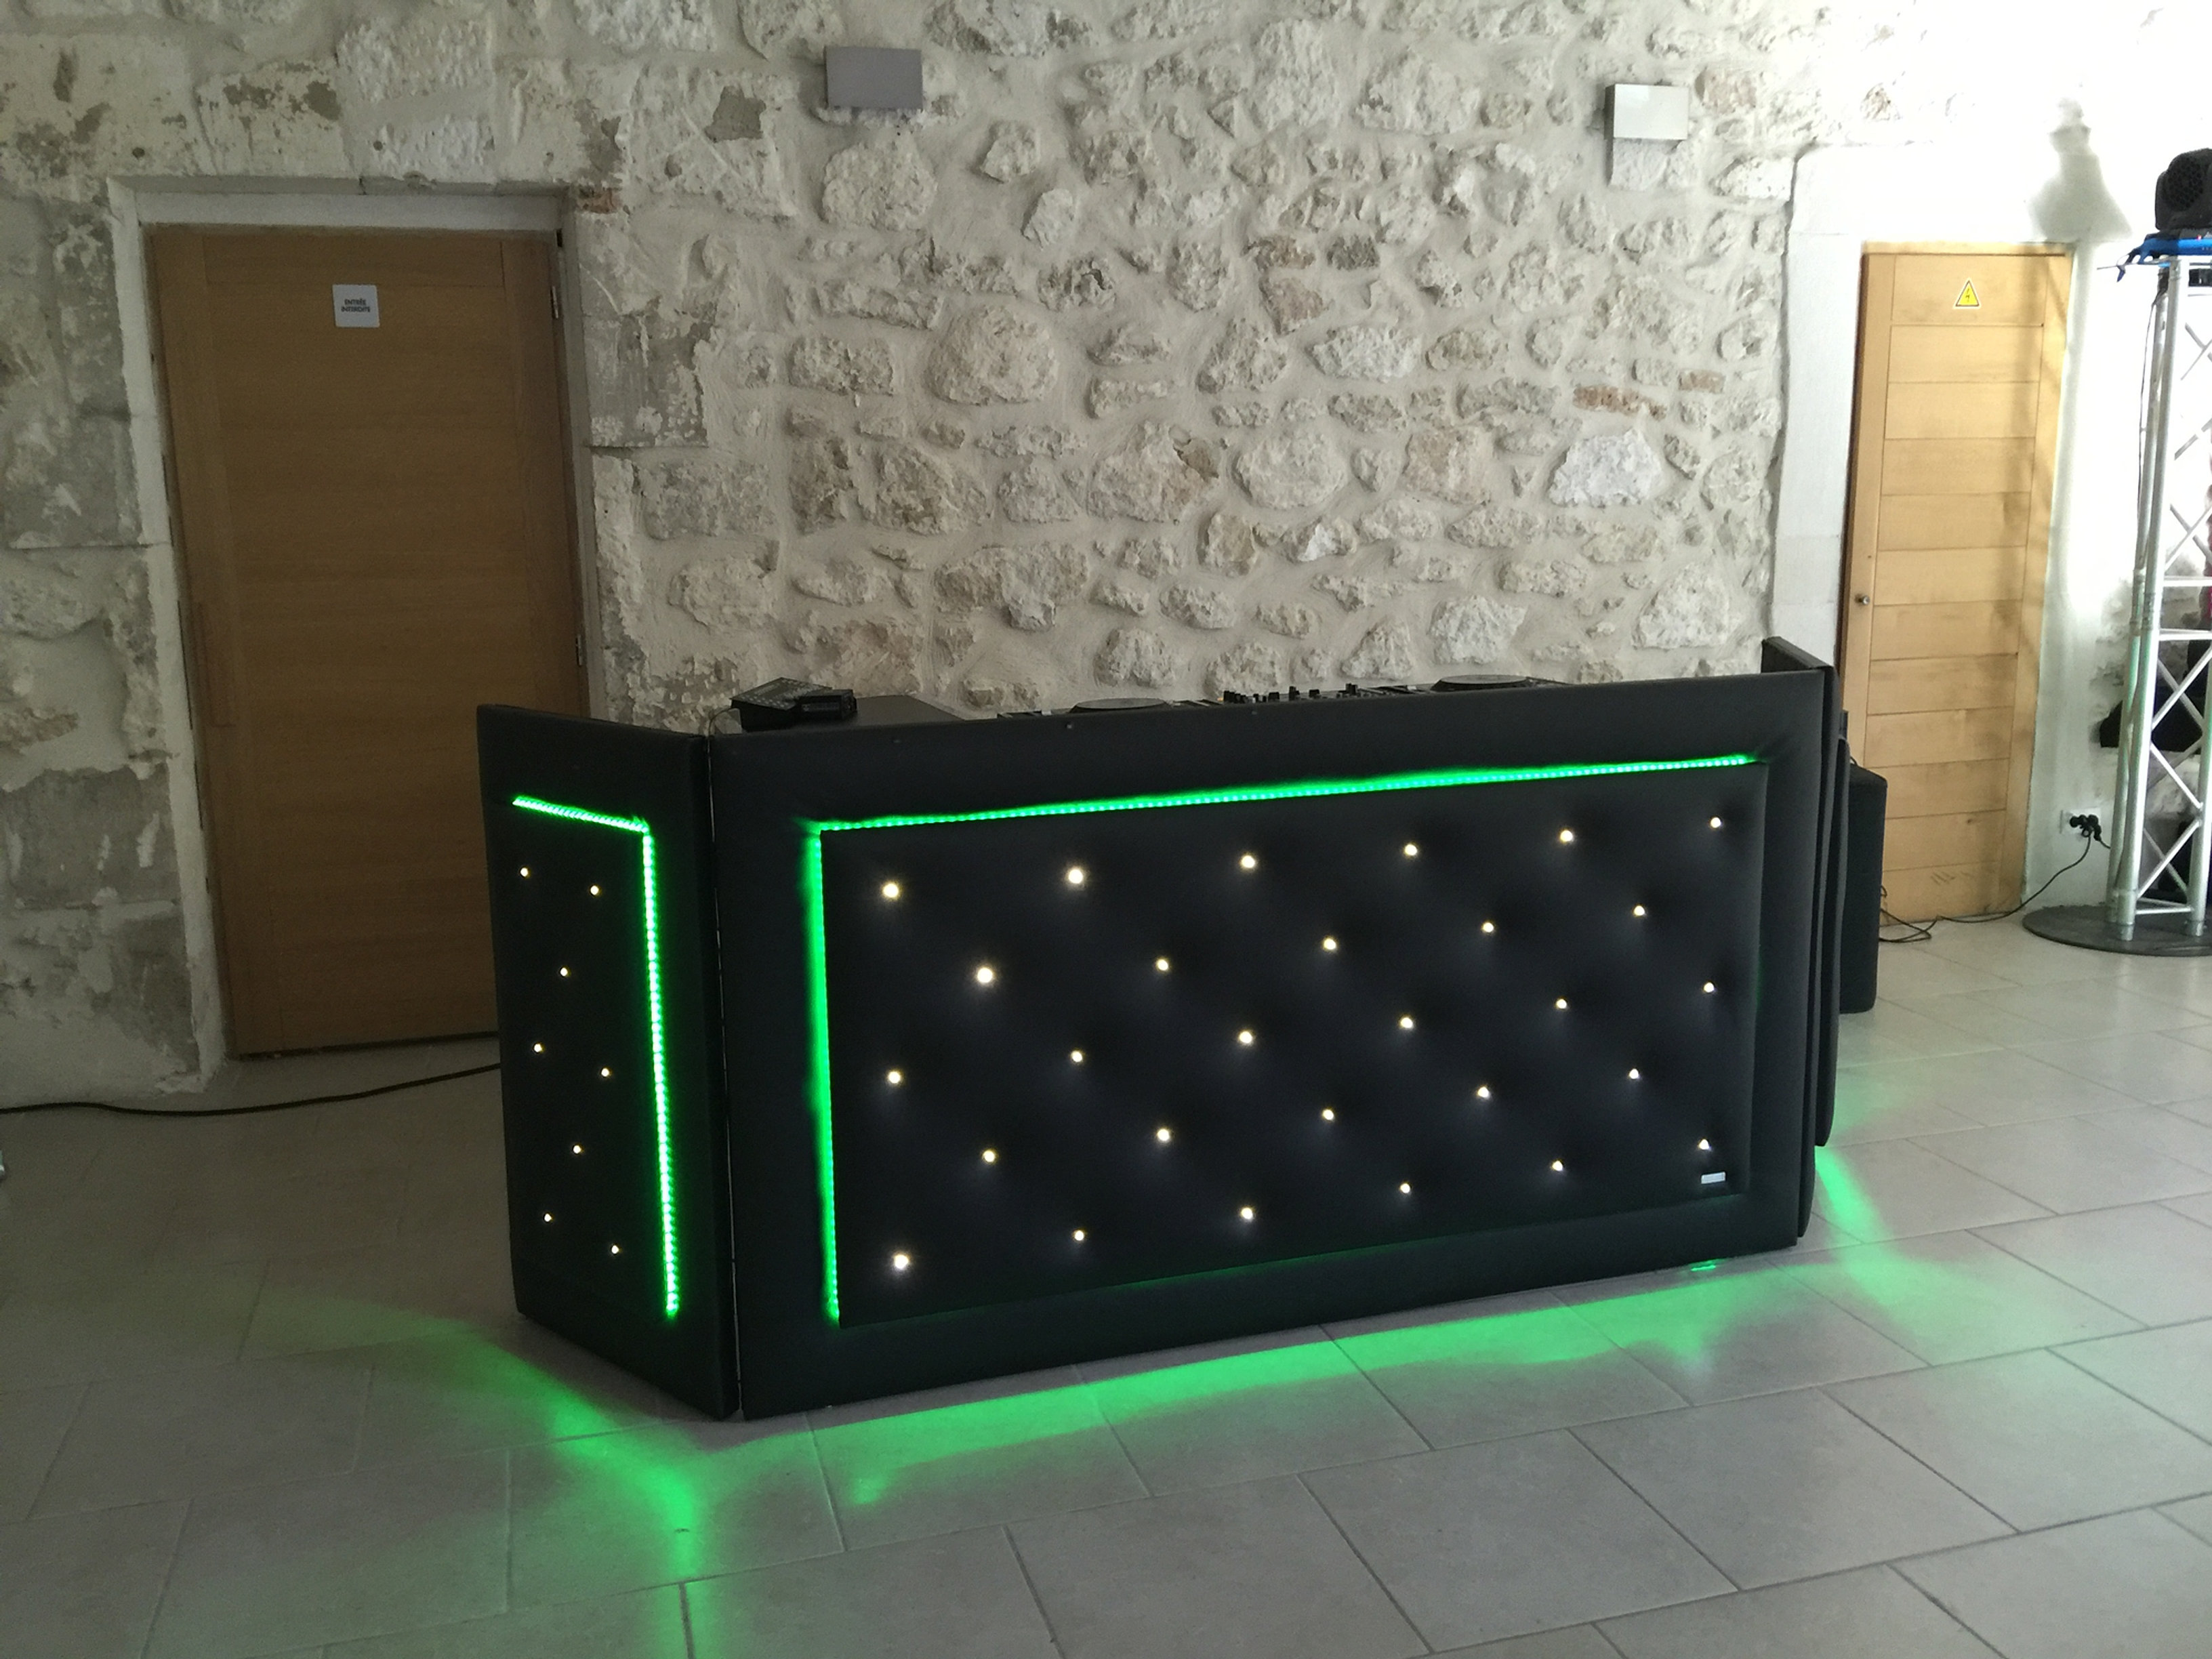 cabine dj capitonné led - location dalles leds marseille - Meuble Dj Design